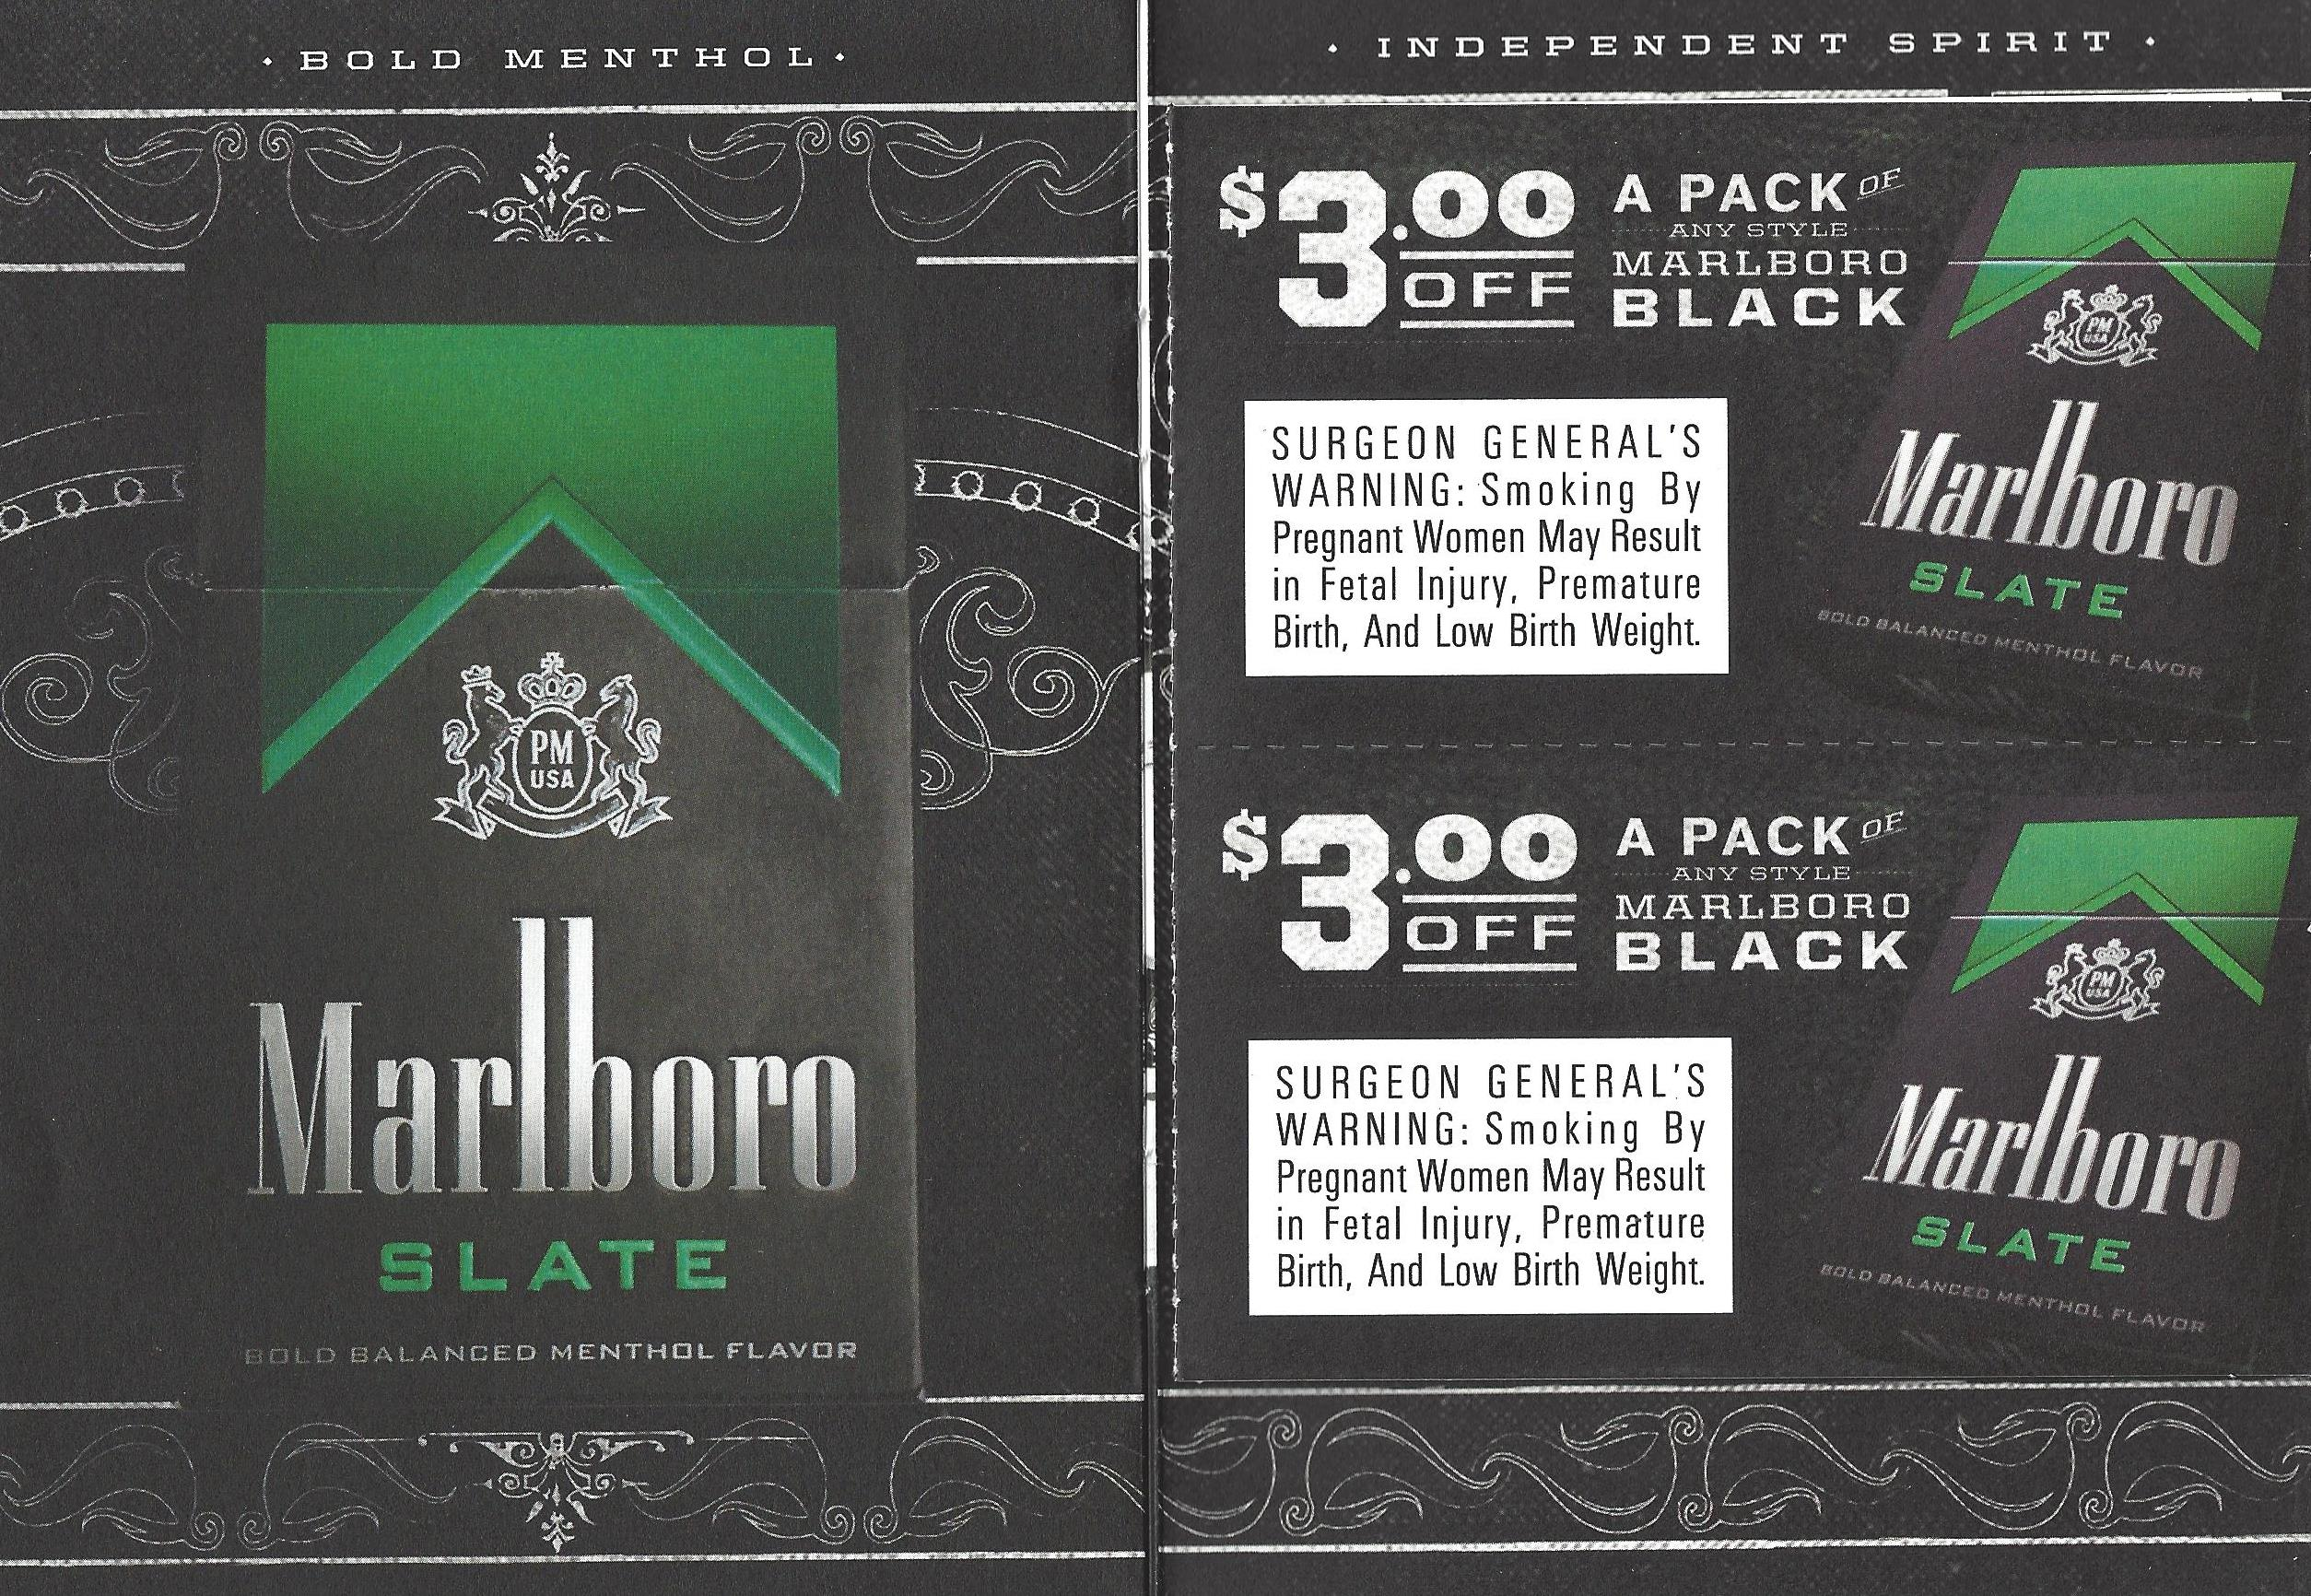 Marlboro Black helps Altria gain market share | Project WATCH